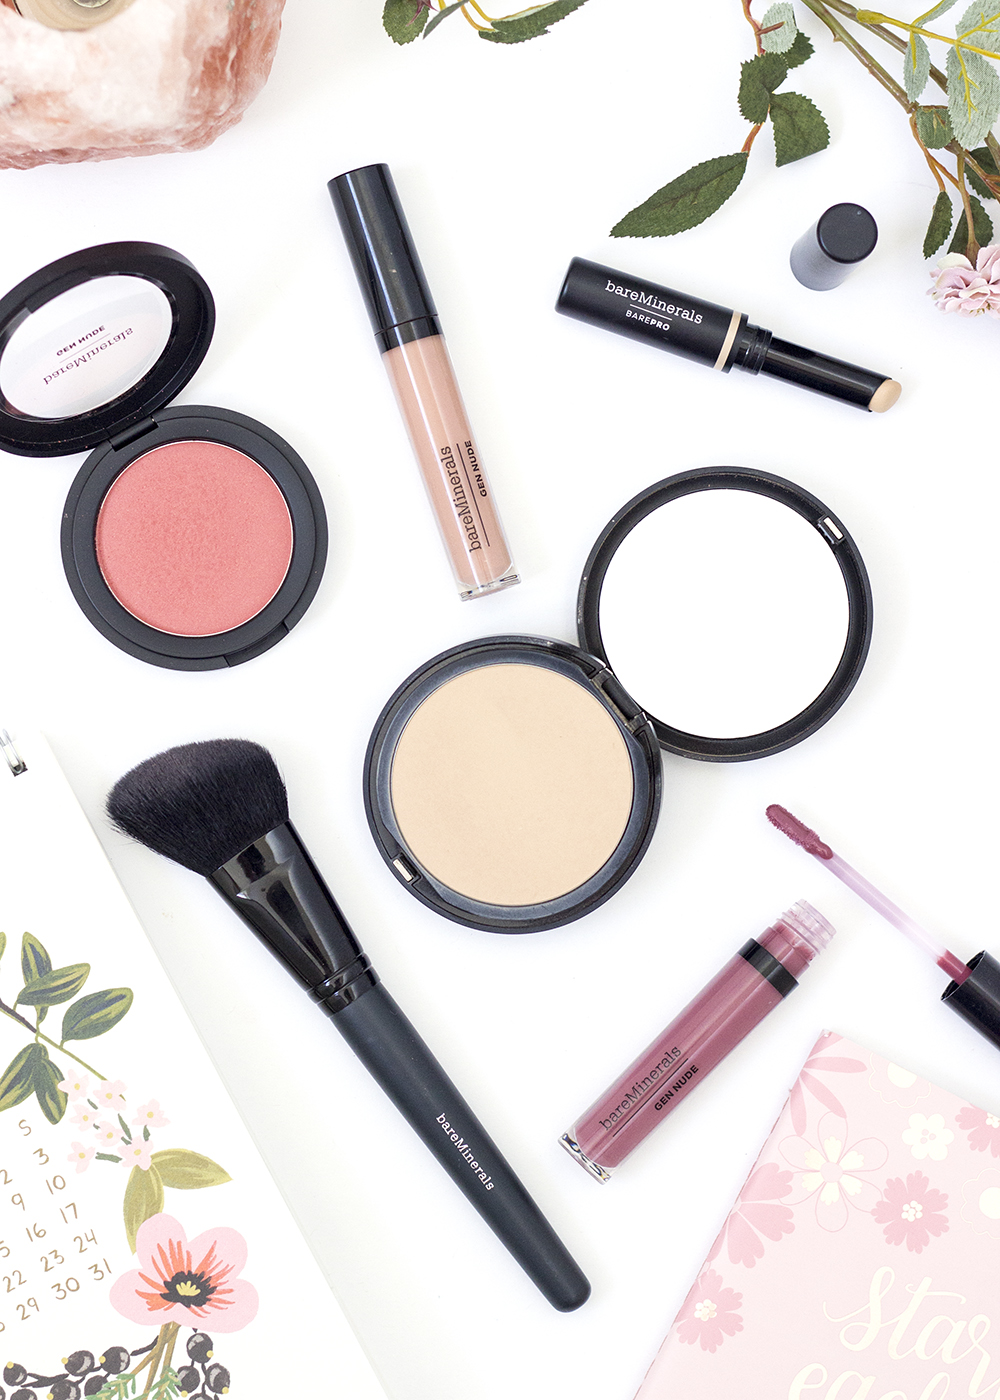 BareMinerals Newest Gen Nude & Bare Pro Makeup Launches